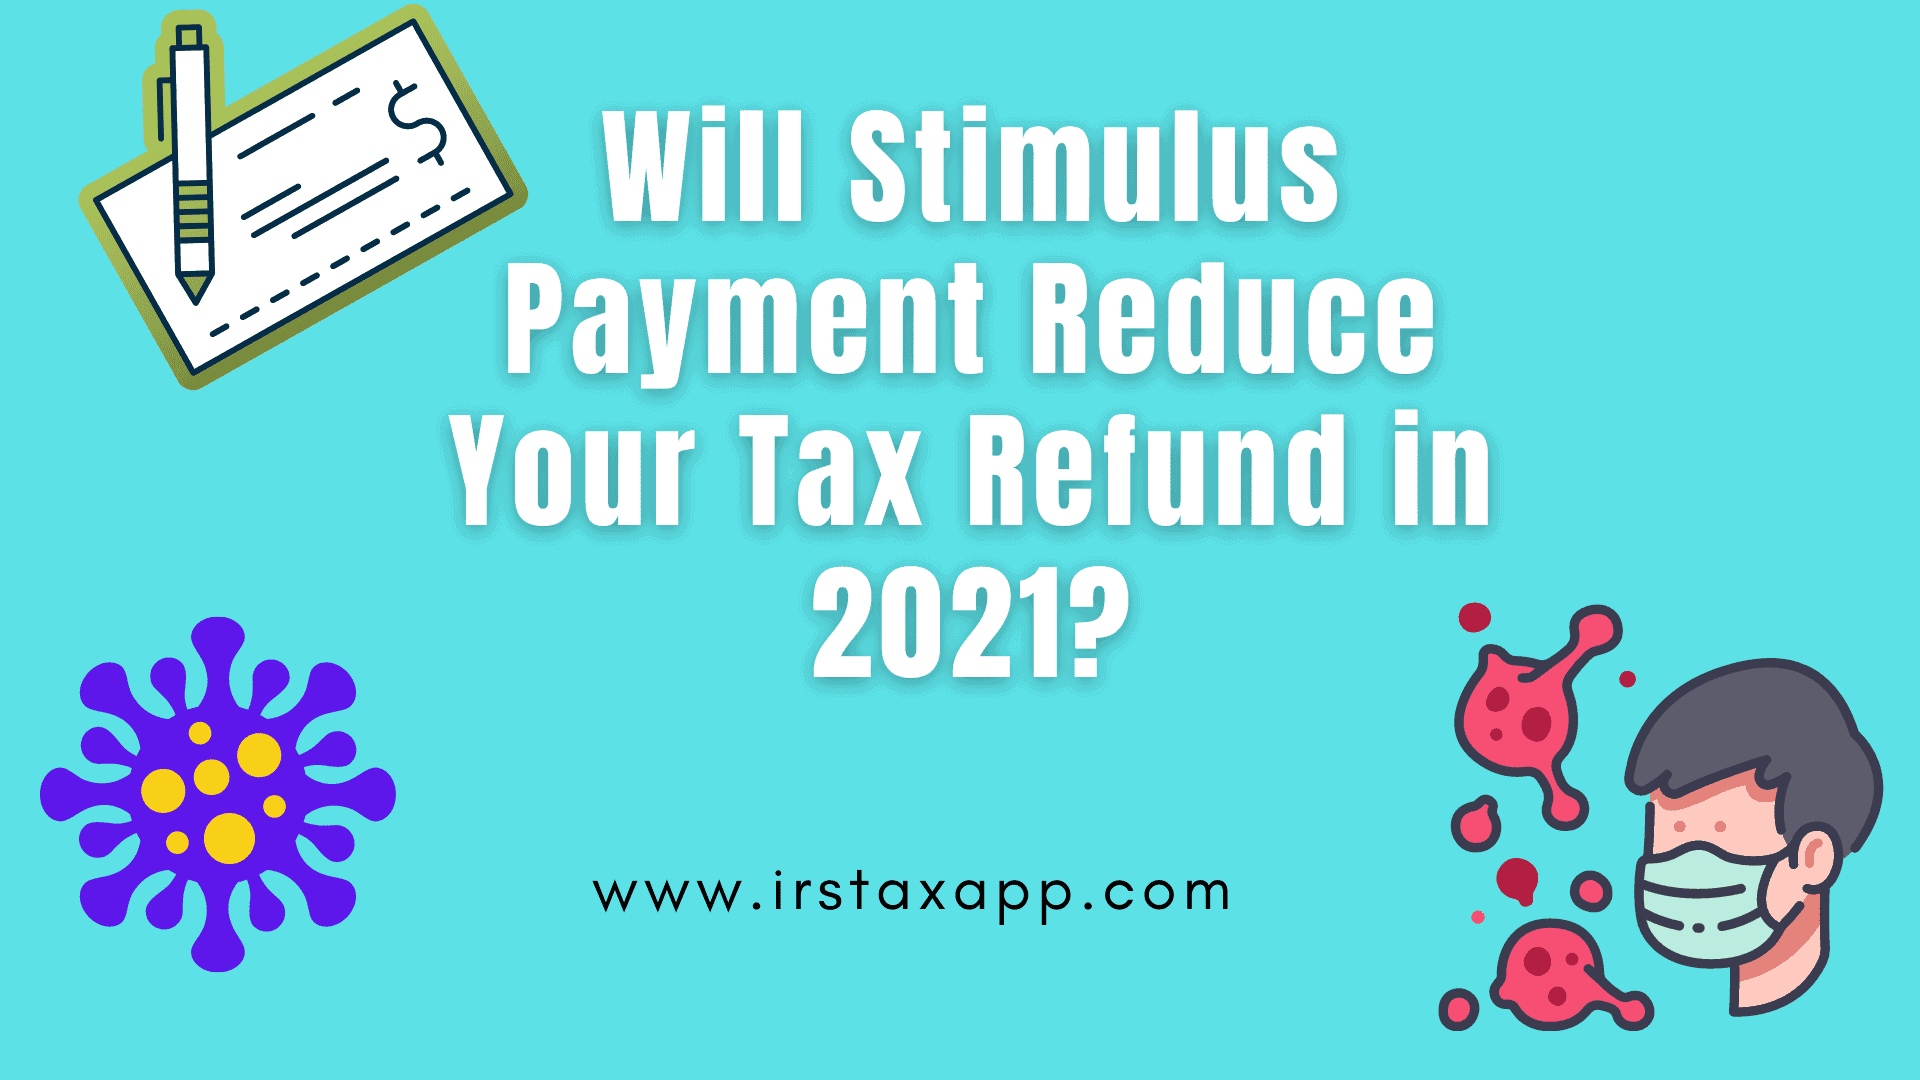 Will Tax refund Get Reduced by Stimulus Payments?